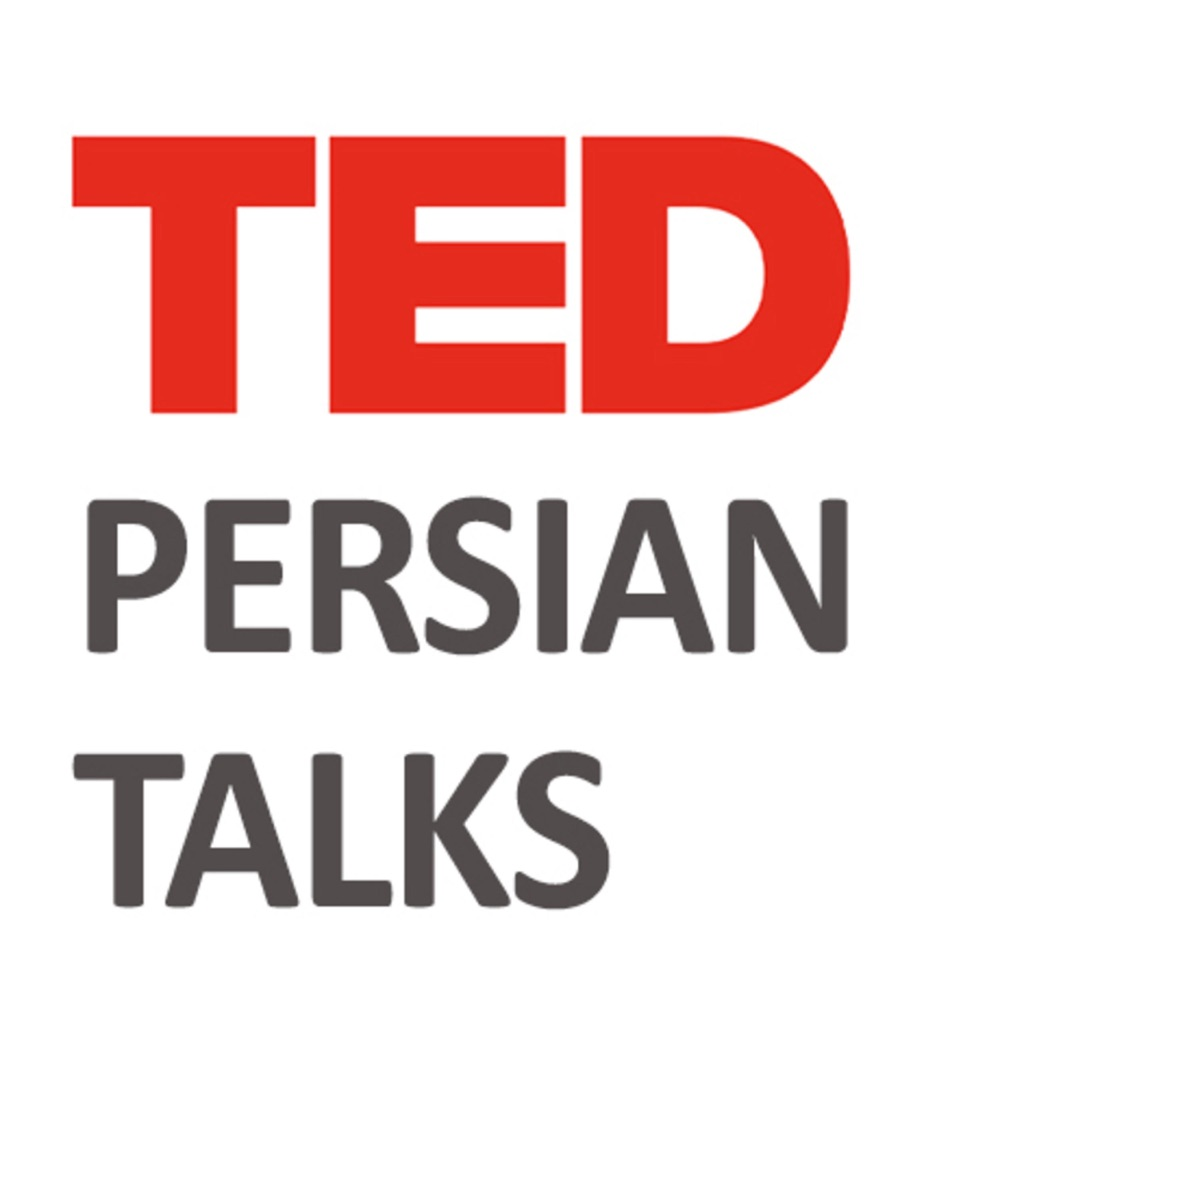 persian ted talks - تد تاک فارسی